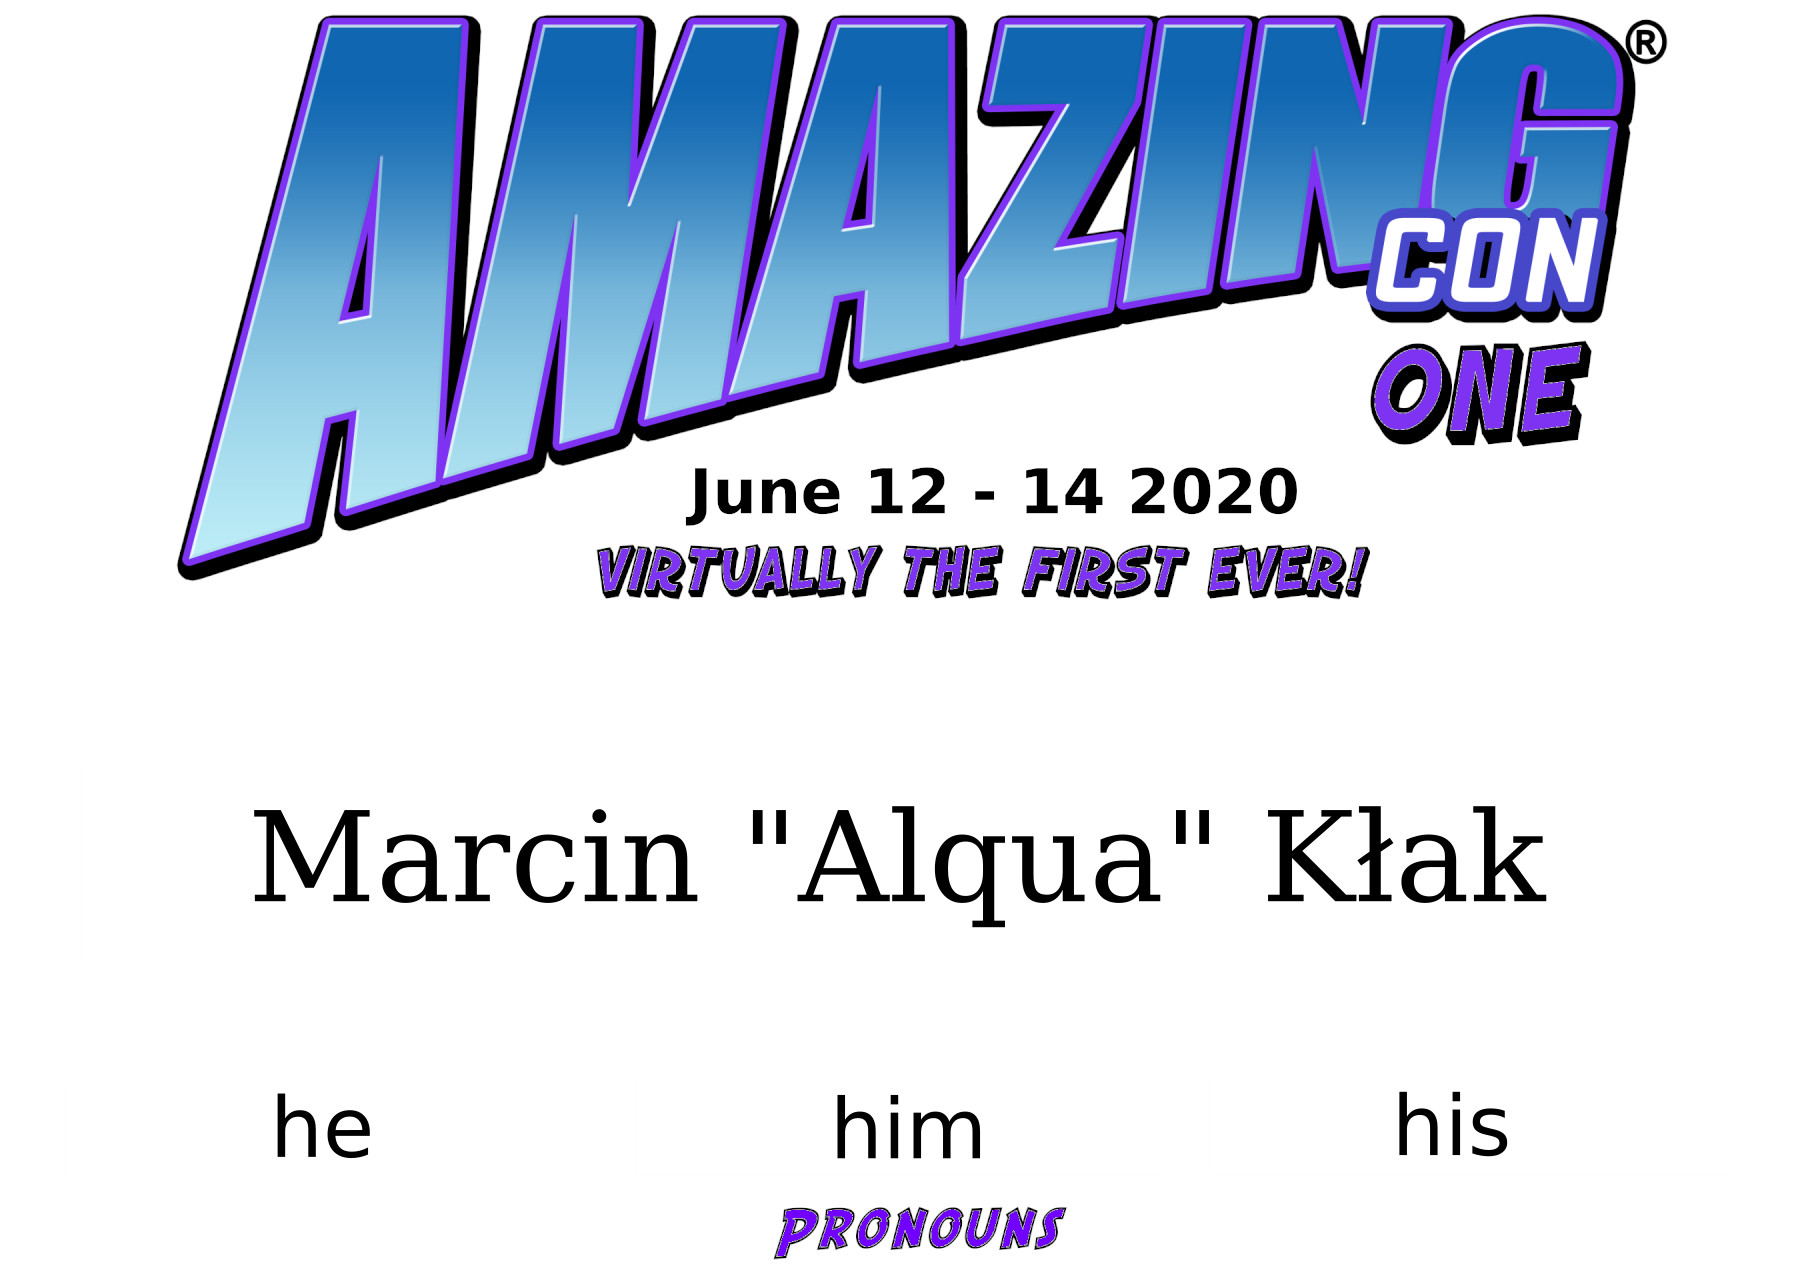 Convention badge with the name 'AmazingCon one' followed by date and my name (Marcin Alqua Klak) and my pronouns (he/him/his).